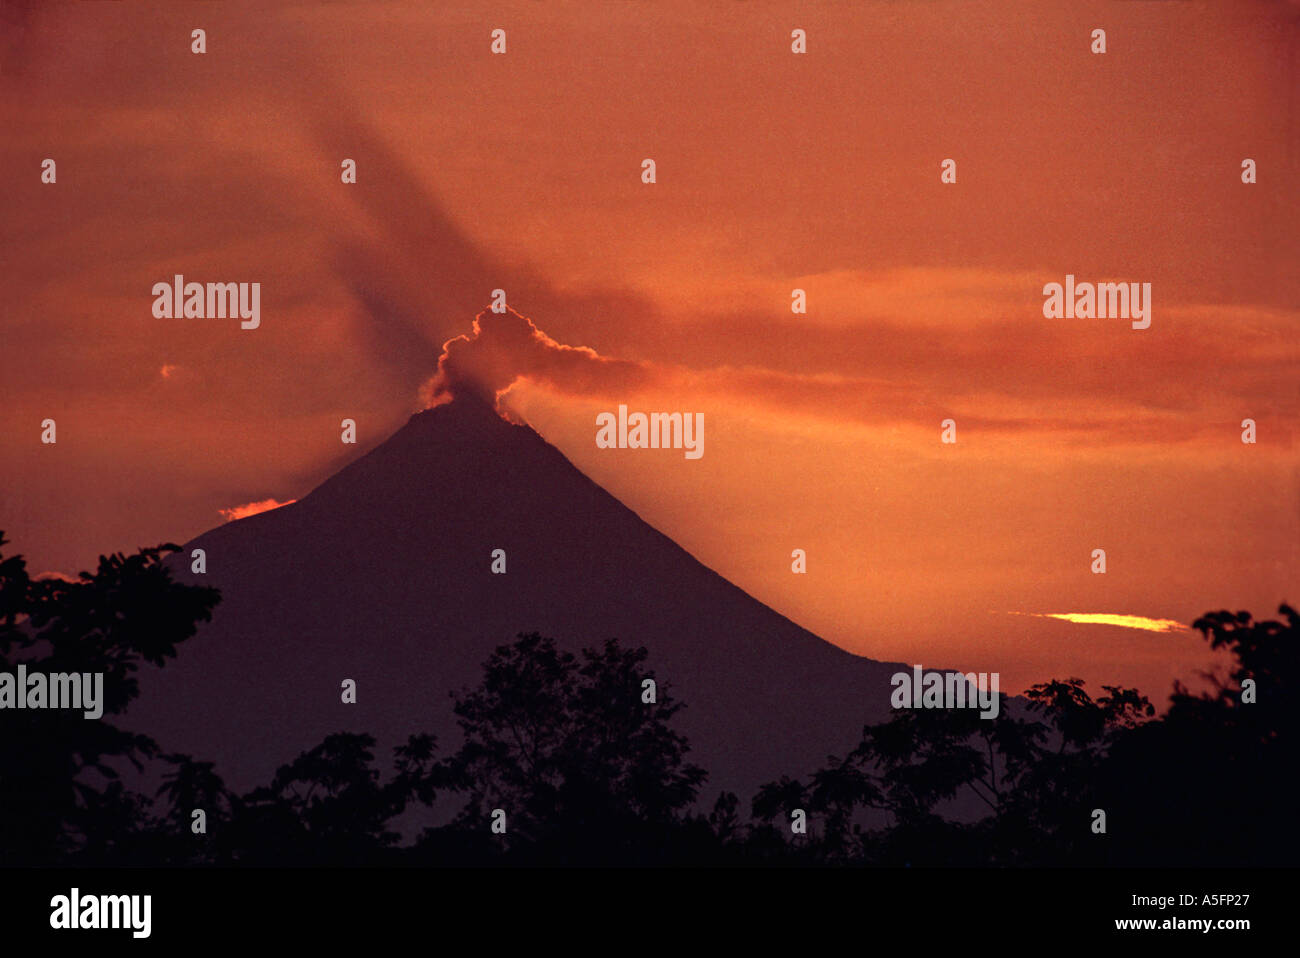 A plume of smoke rises from the cone of Gunung Merapi a volcano overlooking the sacred site of Borobudur Central Java Indonesia - Stock Image